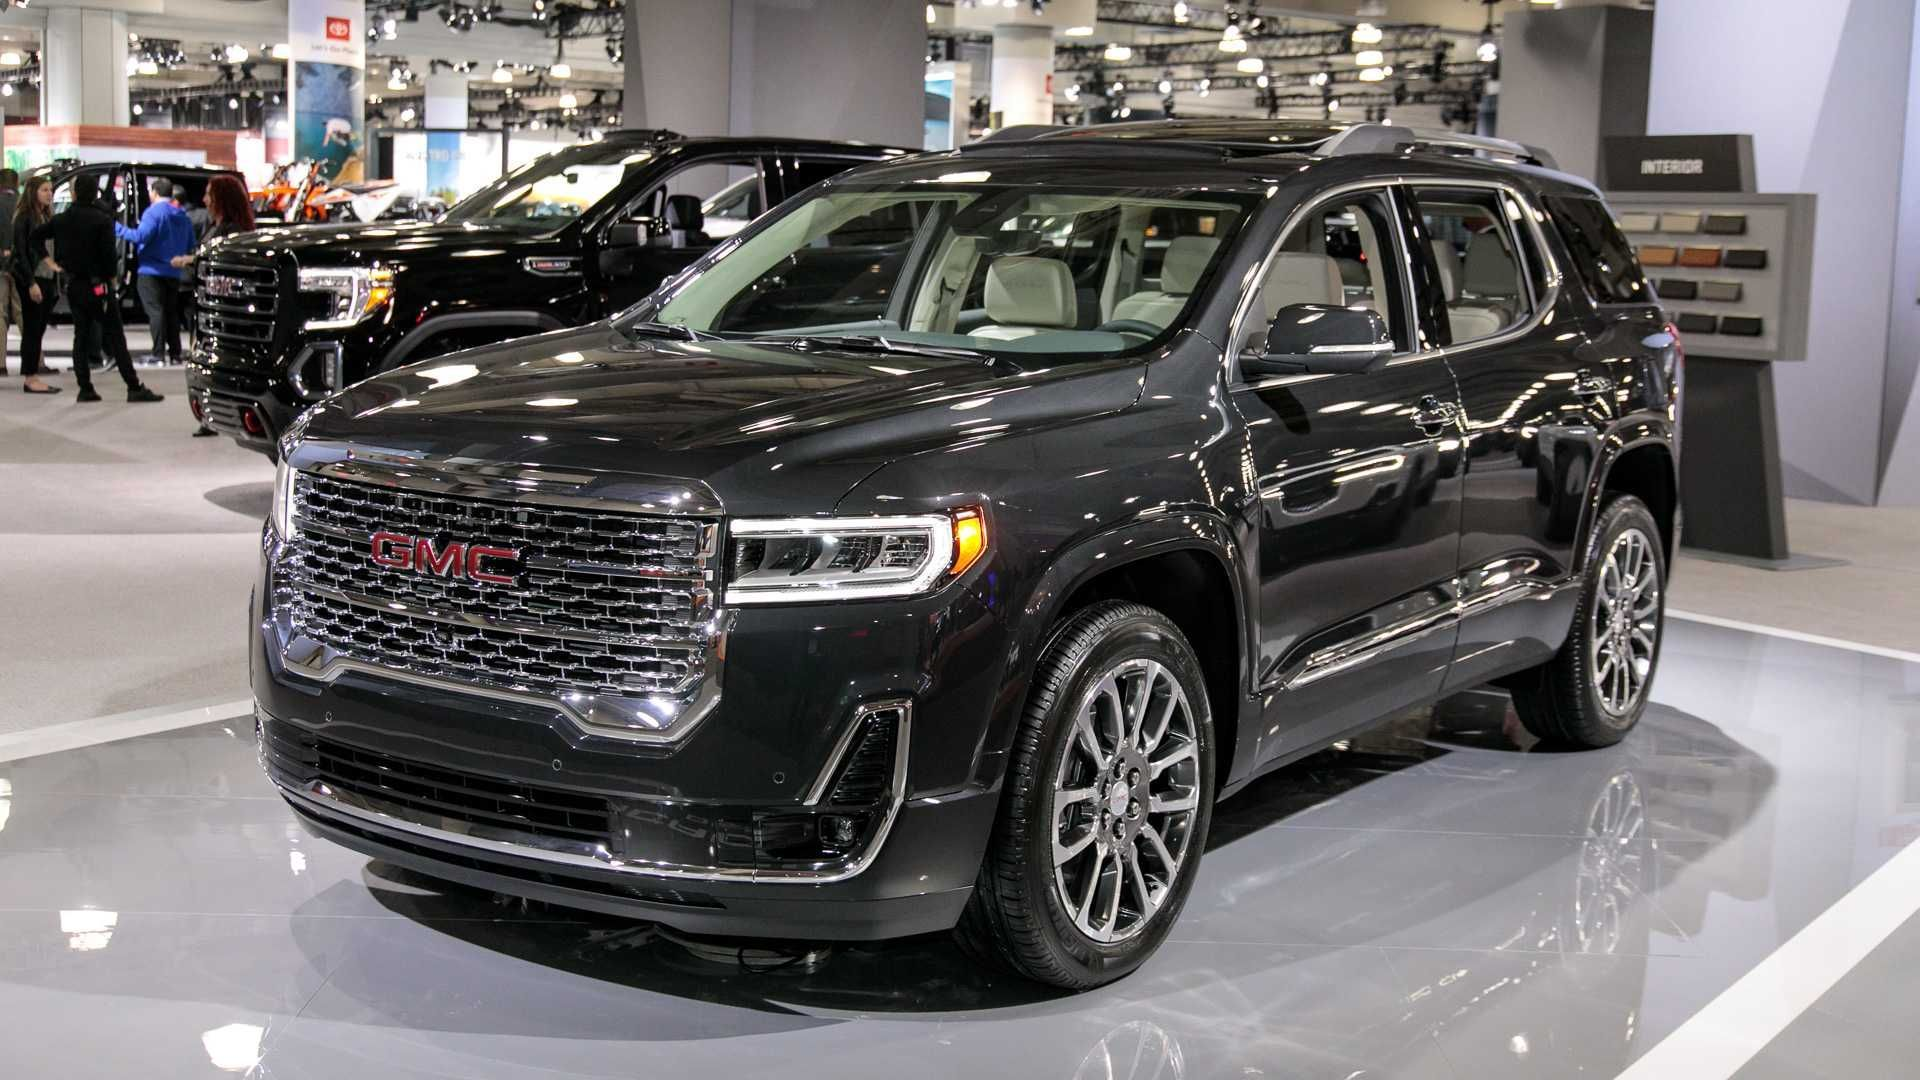 New Gmc Acadia 2021 Worth And Launch Date In 2020 Gmc Vehicles